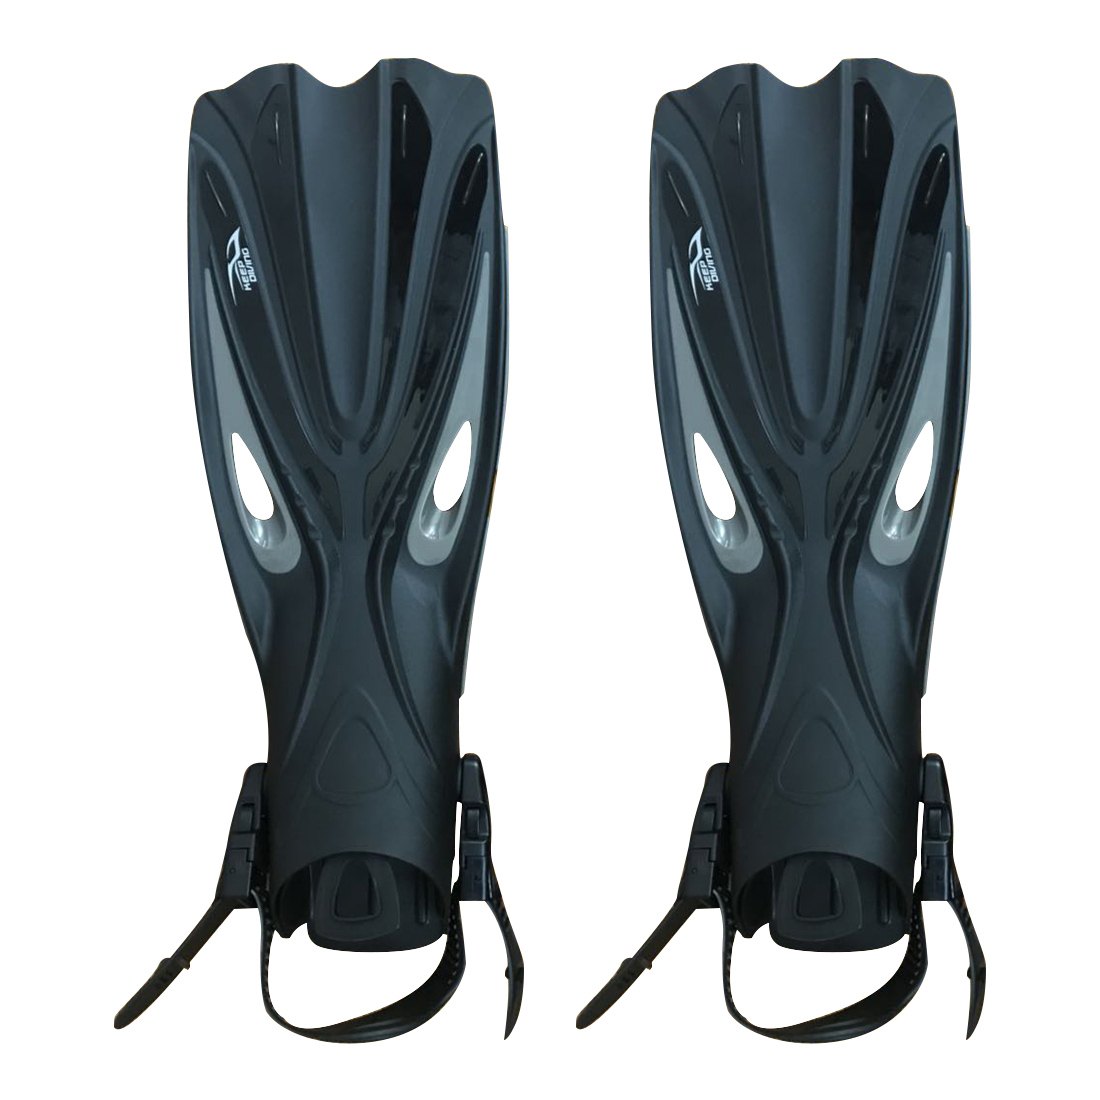 Super sell KEEP DIVING Open Heel Scuba Diving Long Fins Adjustable Snorkeling Swim Flippers Special For Diving Boots Shoes Gea